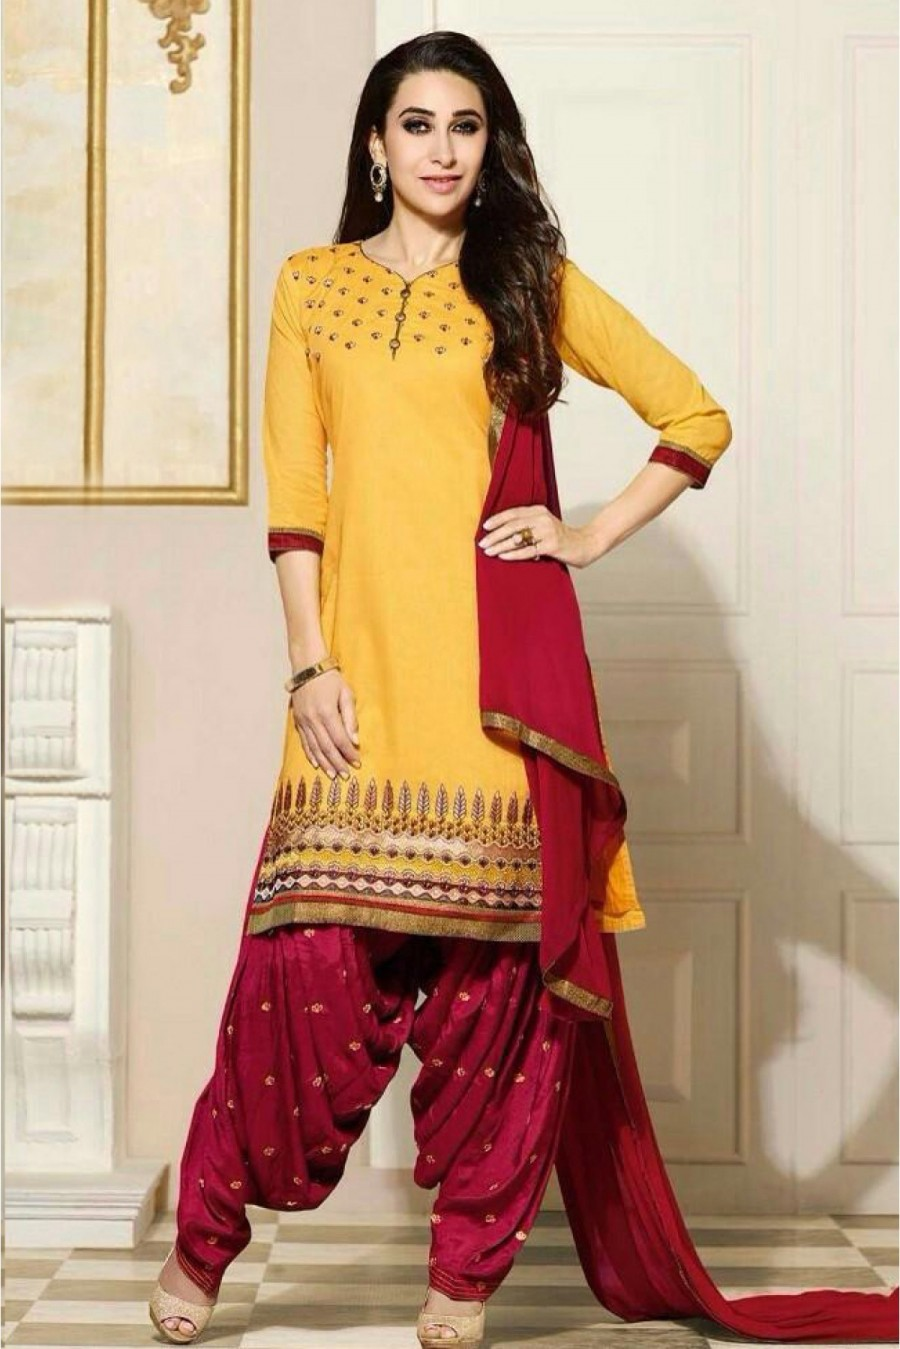 1d2ae815c3 Buy Bollywood Karishma Kapoor Cotton Party Wear Patiala Suit in Yellow  Colour Online